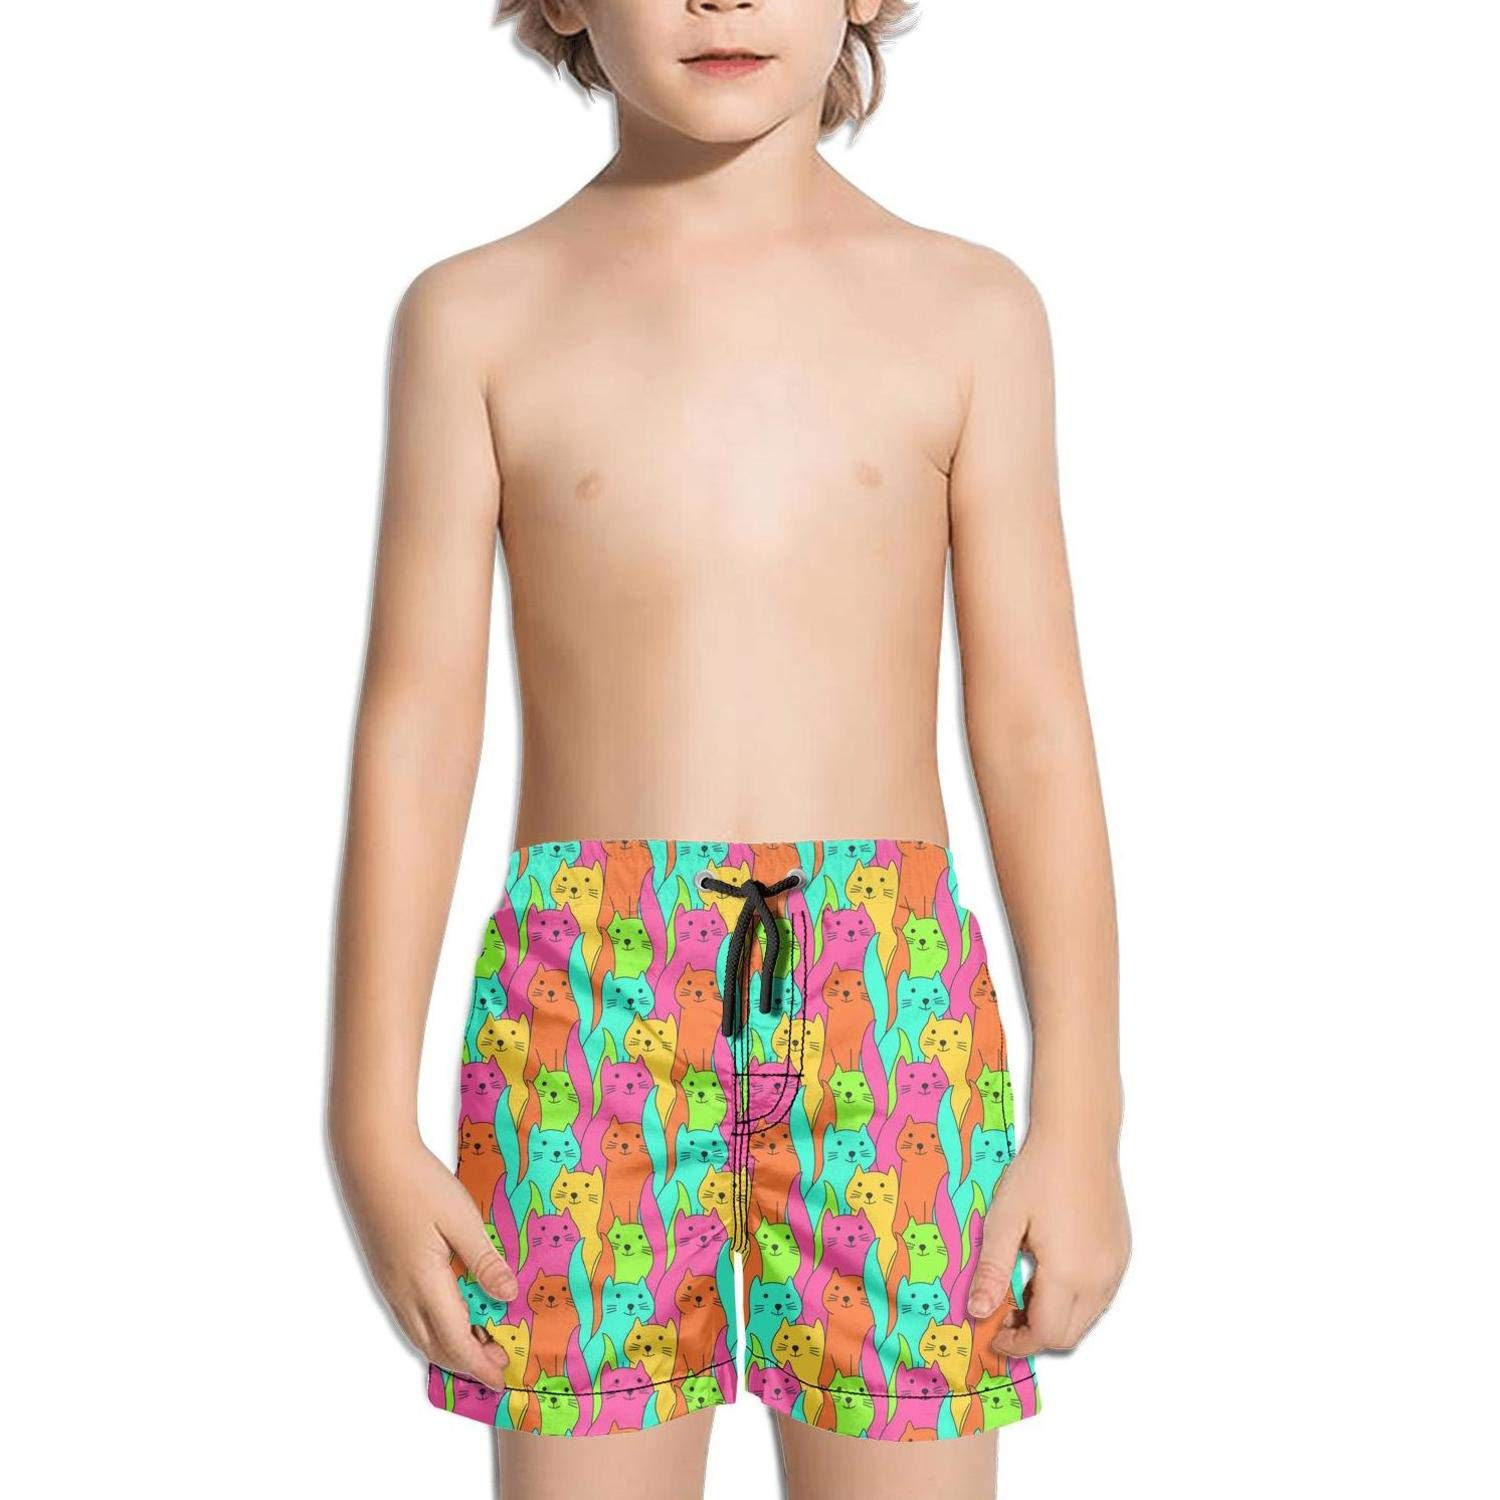 Cute Cat Pizza Taco Boys Girls Swimming Trunks Beach Board Shorts Fully Lined Absorbent Printed Graphic Kids Short Pants